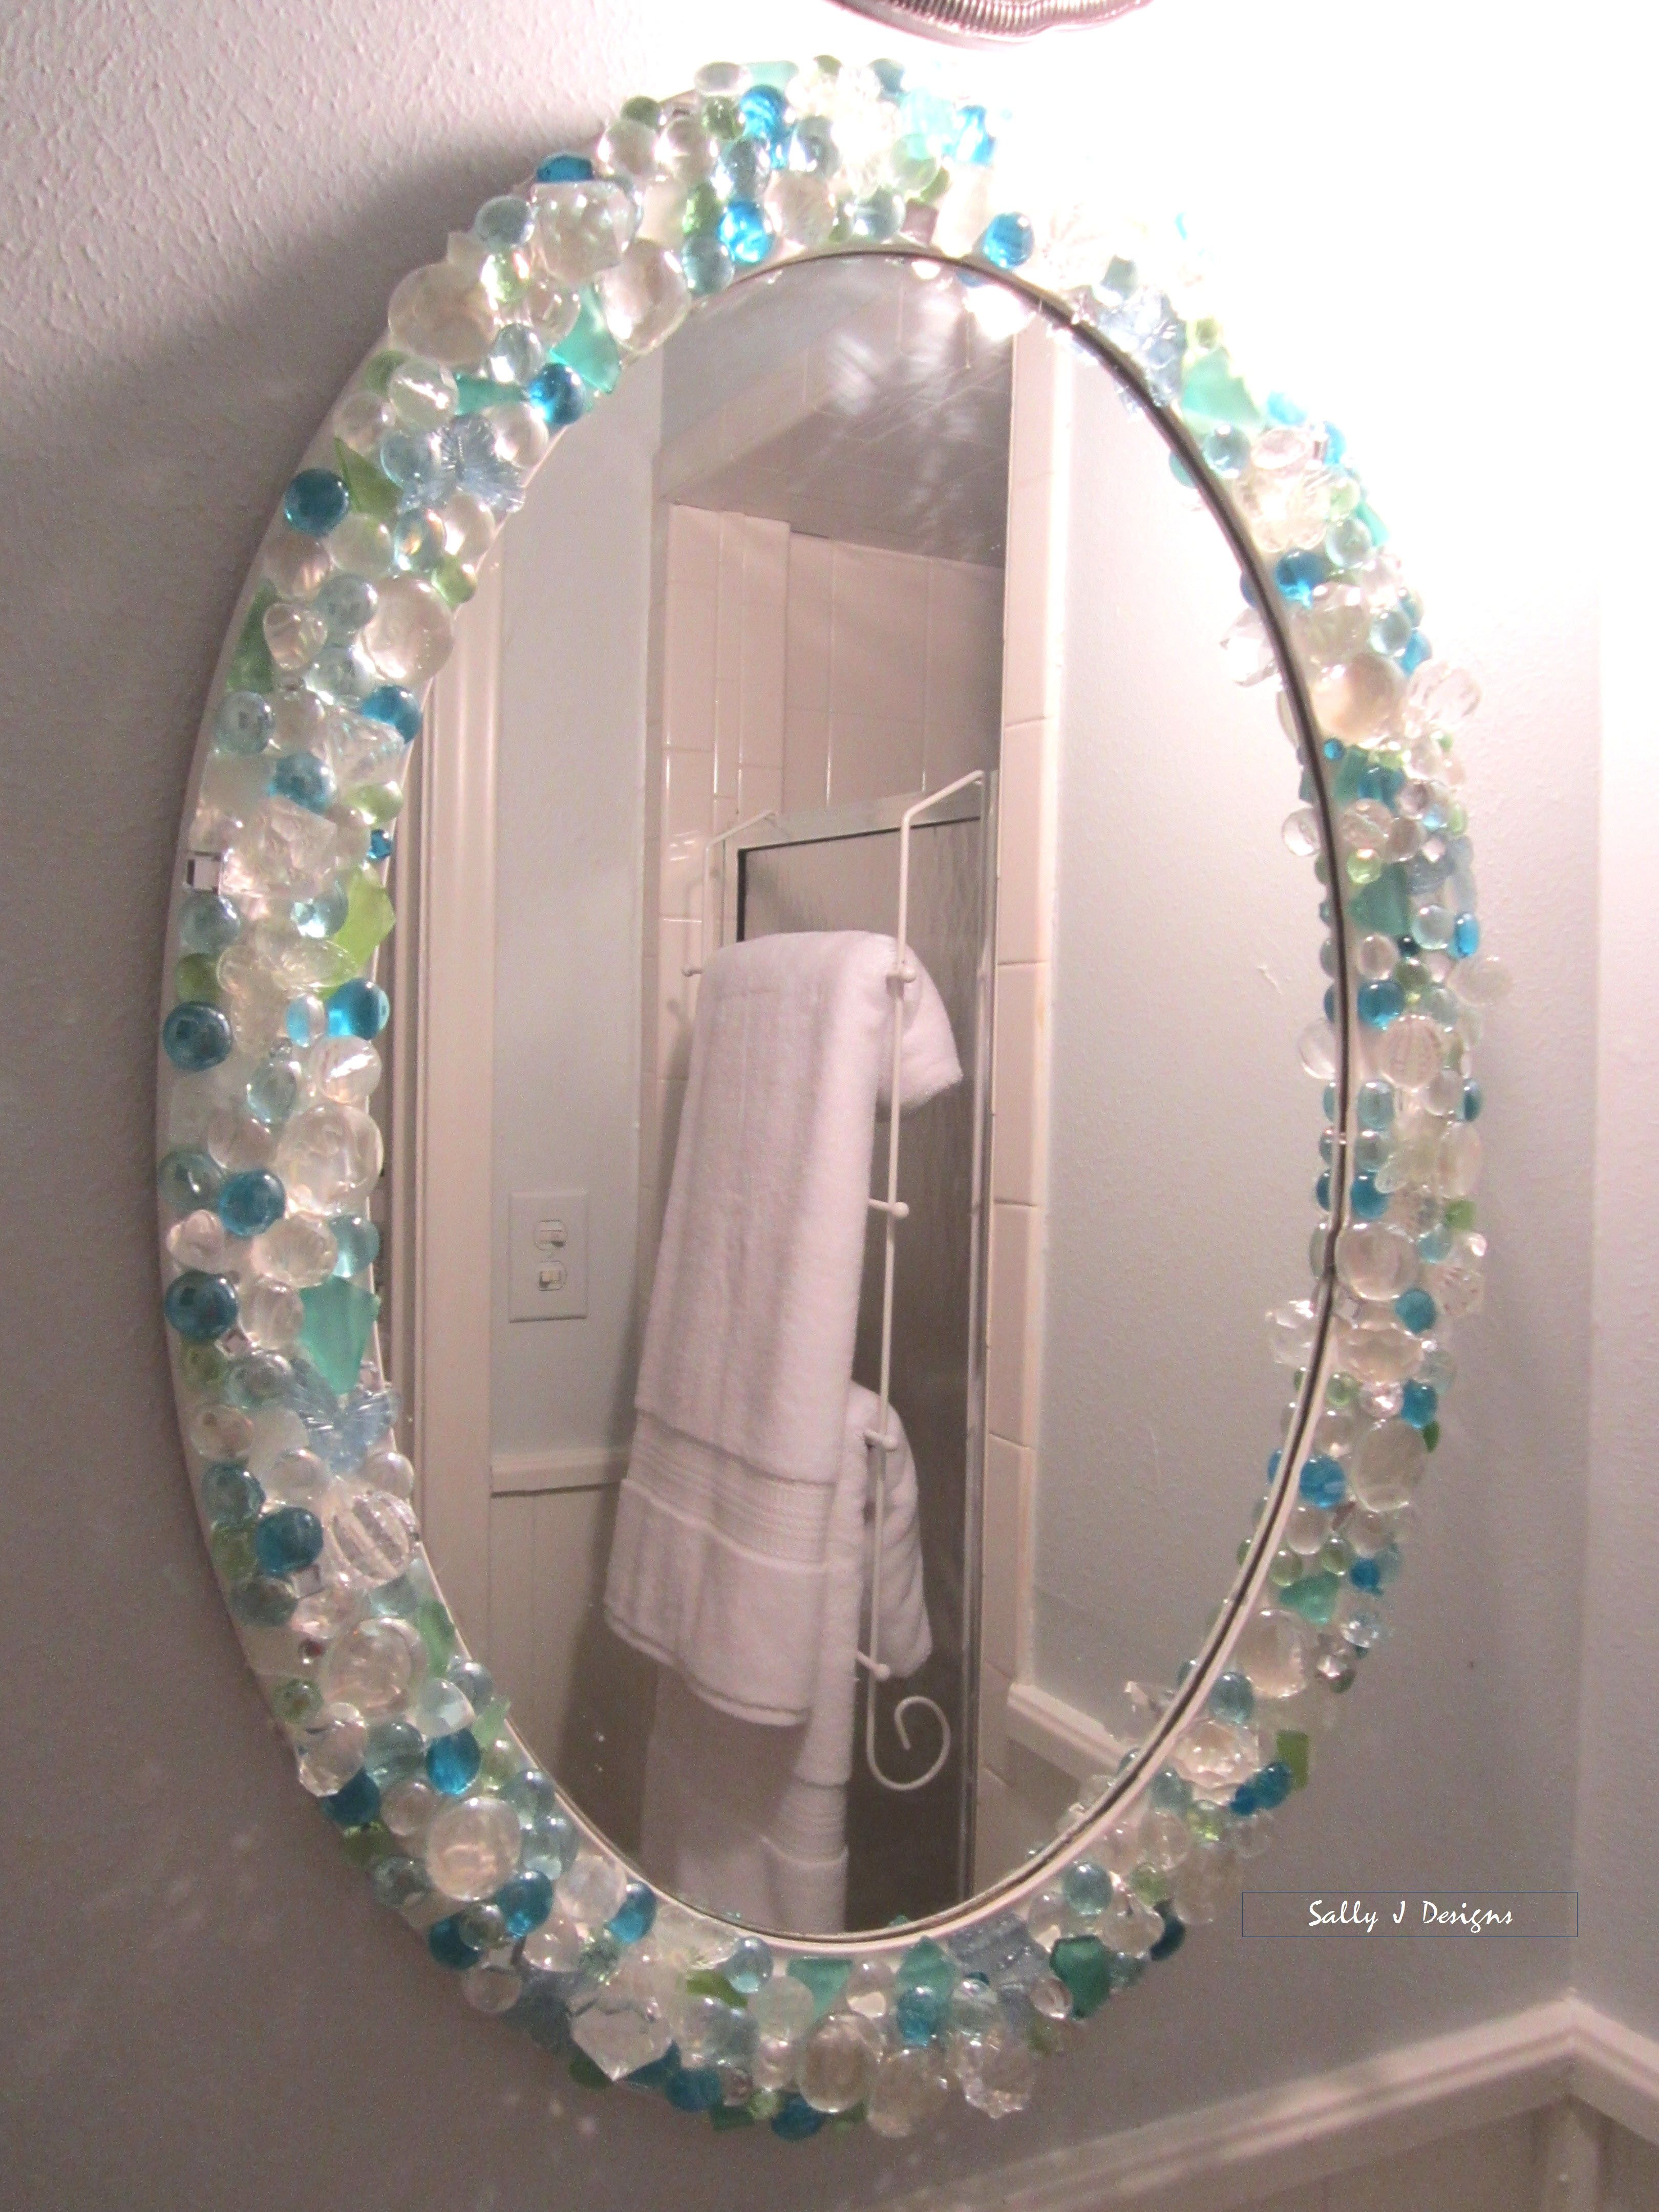 Mirror in small bathroom is a diy with sea glass crystals for Homemade mirror frame ideas